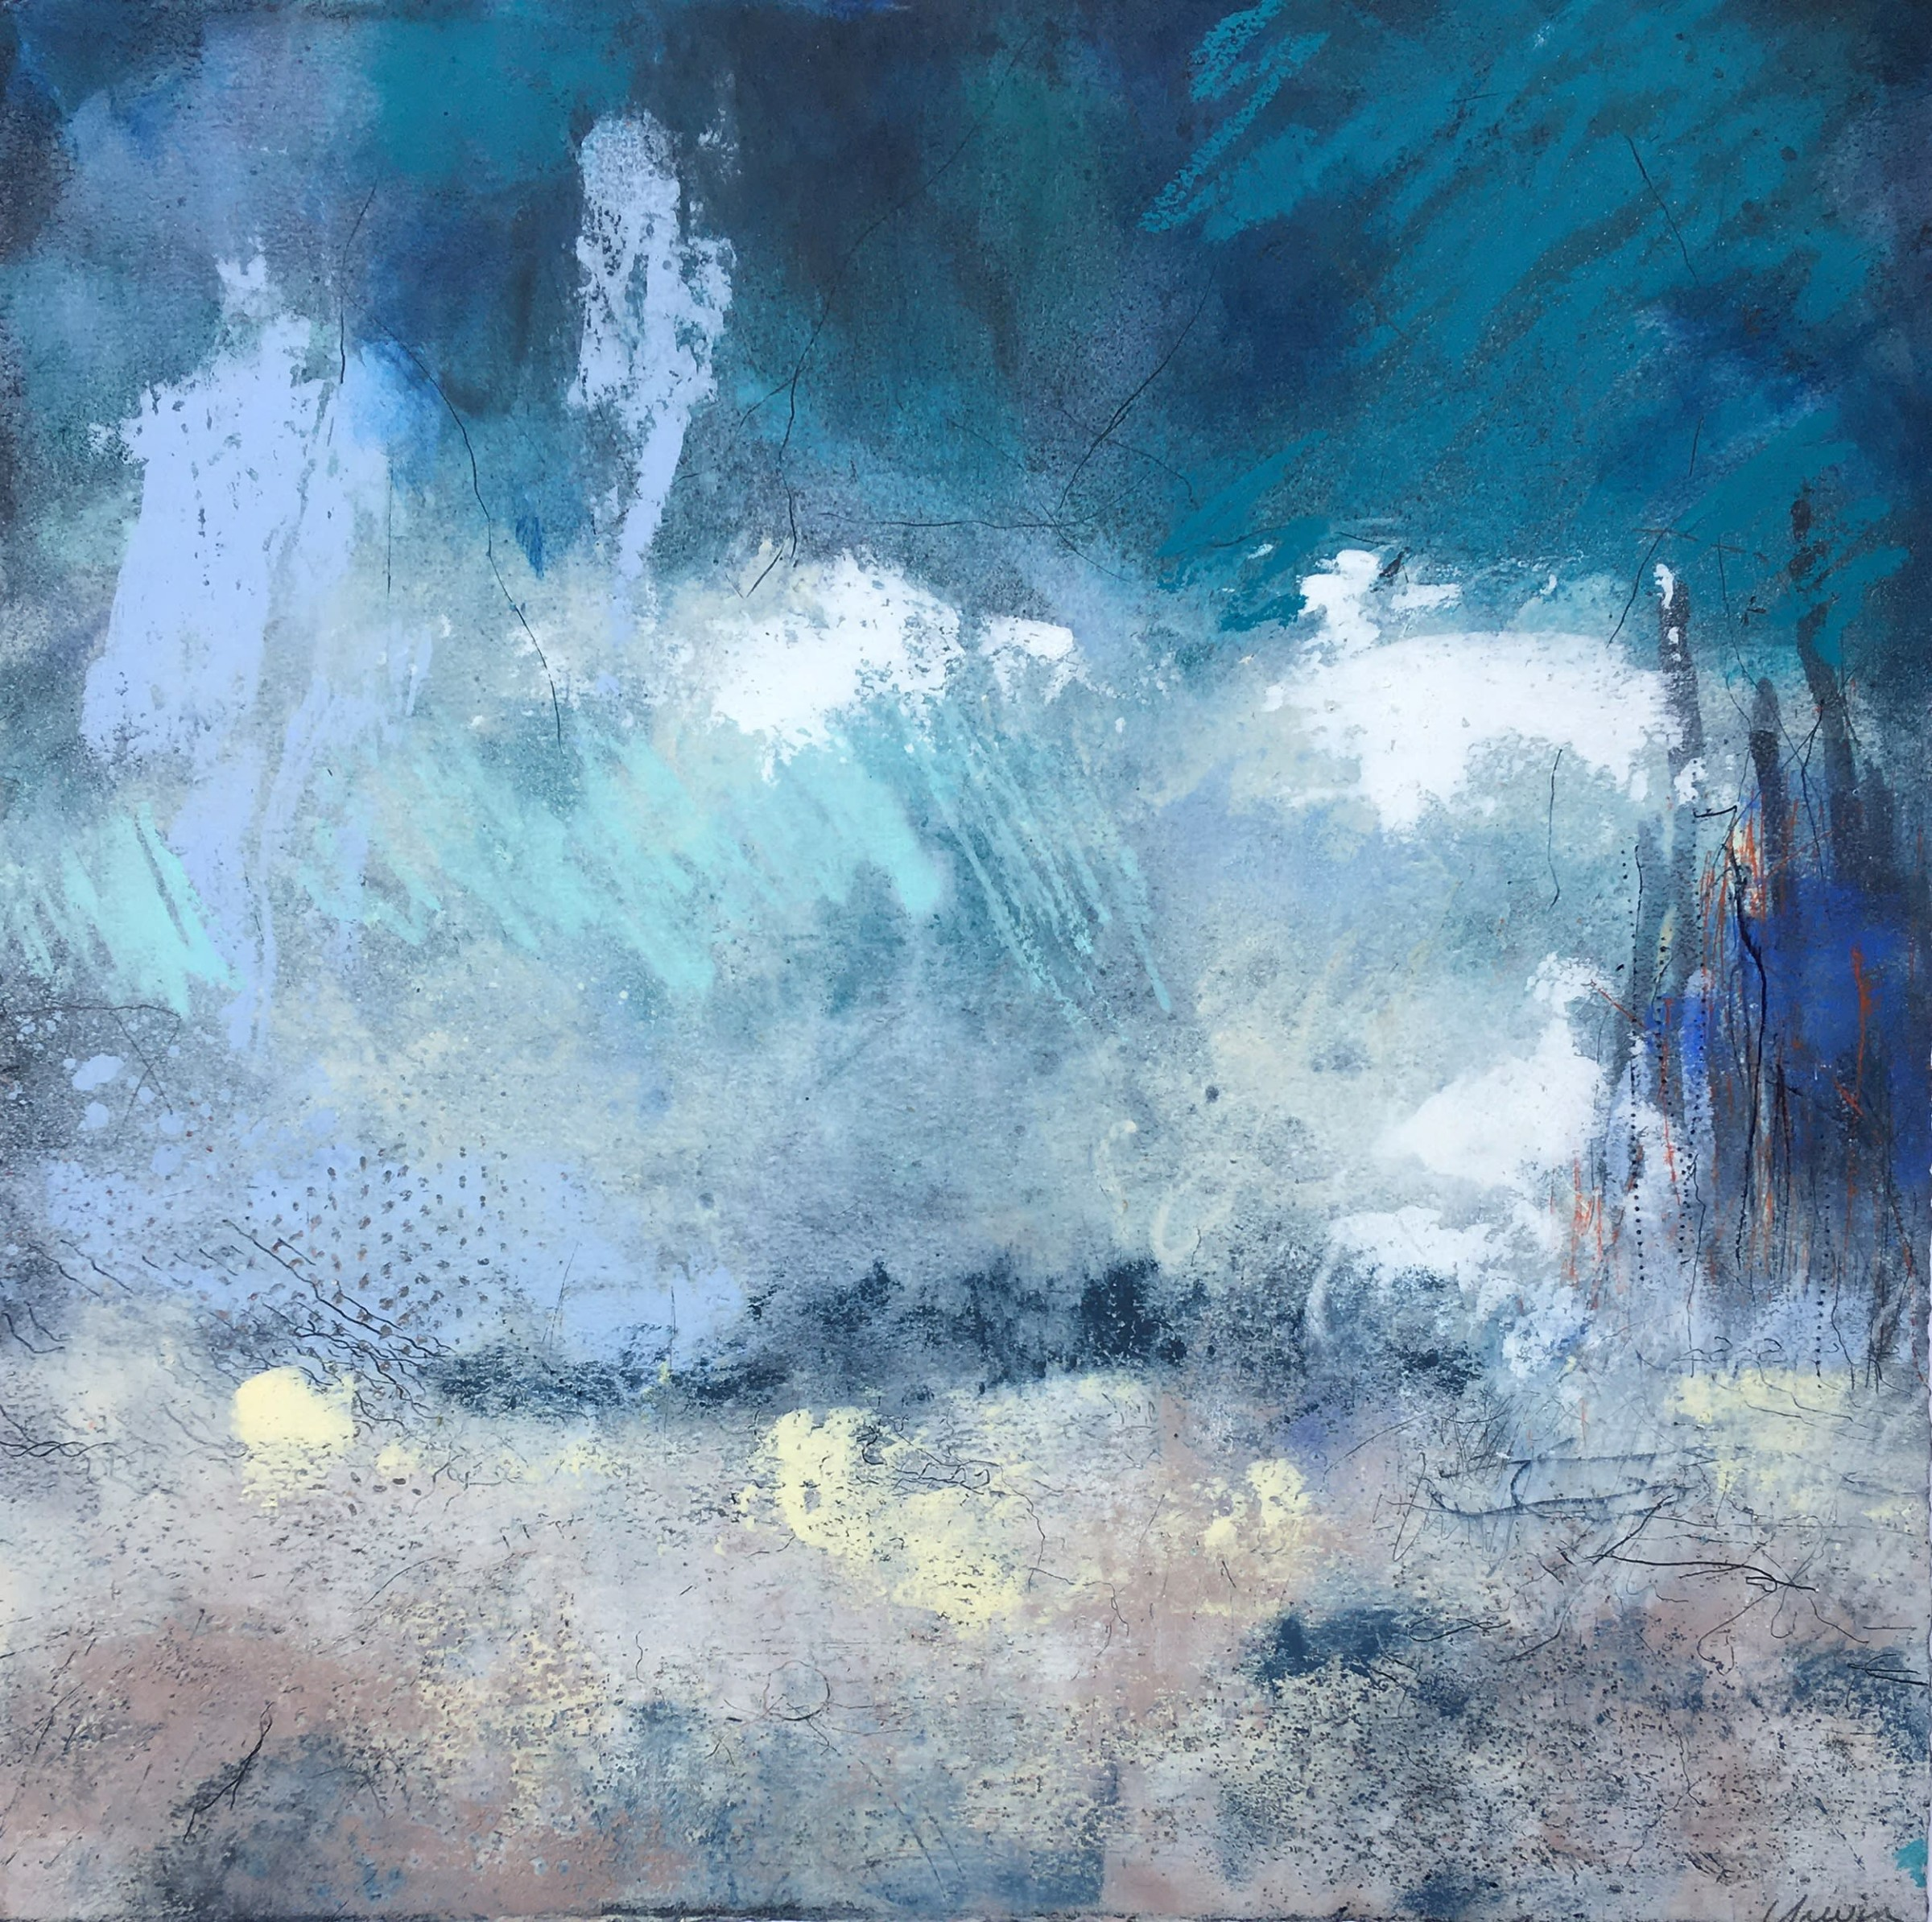 """<span class=""""link fancybox-details-link""""><a href=""""/exhibitions/21/works/artworks_standalone10881/"""">View Detail Page</a></span><div class=""""artist""""><span class=""""artist""""><strong>Bren Unwin PPRE Hon RWS</strong></span></div><div class=""""title""""><em>Rip Tide</em></div><div class=""""medium"""">oil and mixed media monotype</div><div class=""""dimensions"""">54 x 54cm framed</div><div class=""""edition_details"""">1/1</div>"""